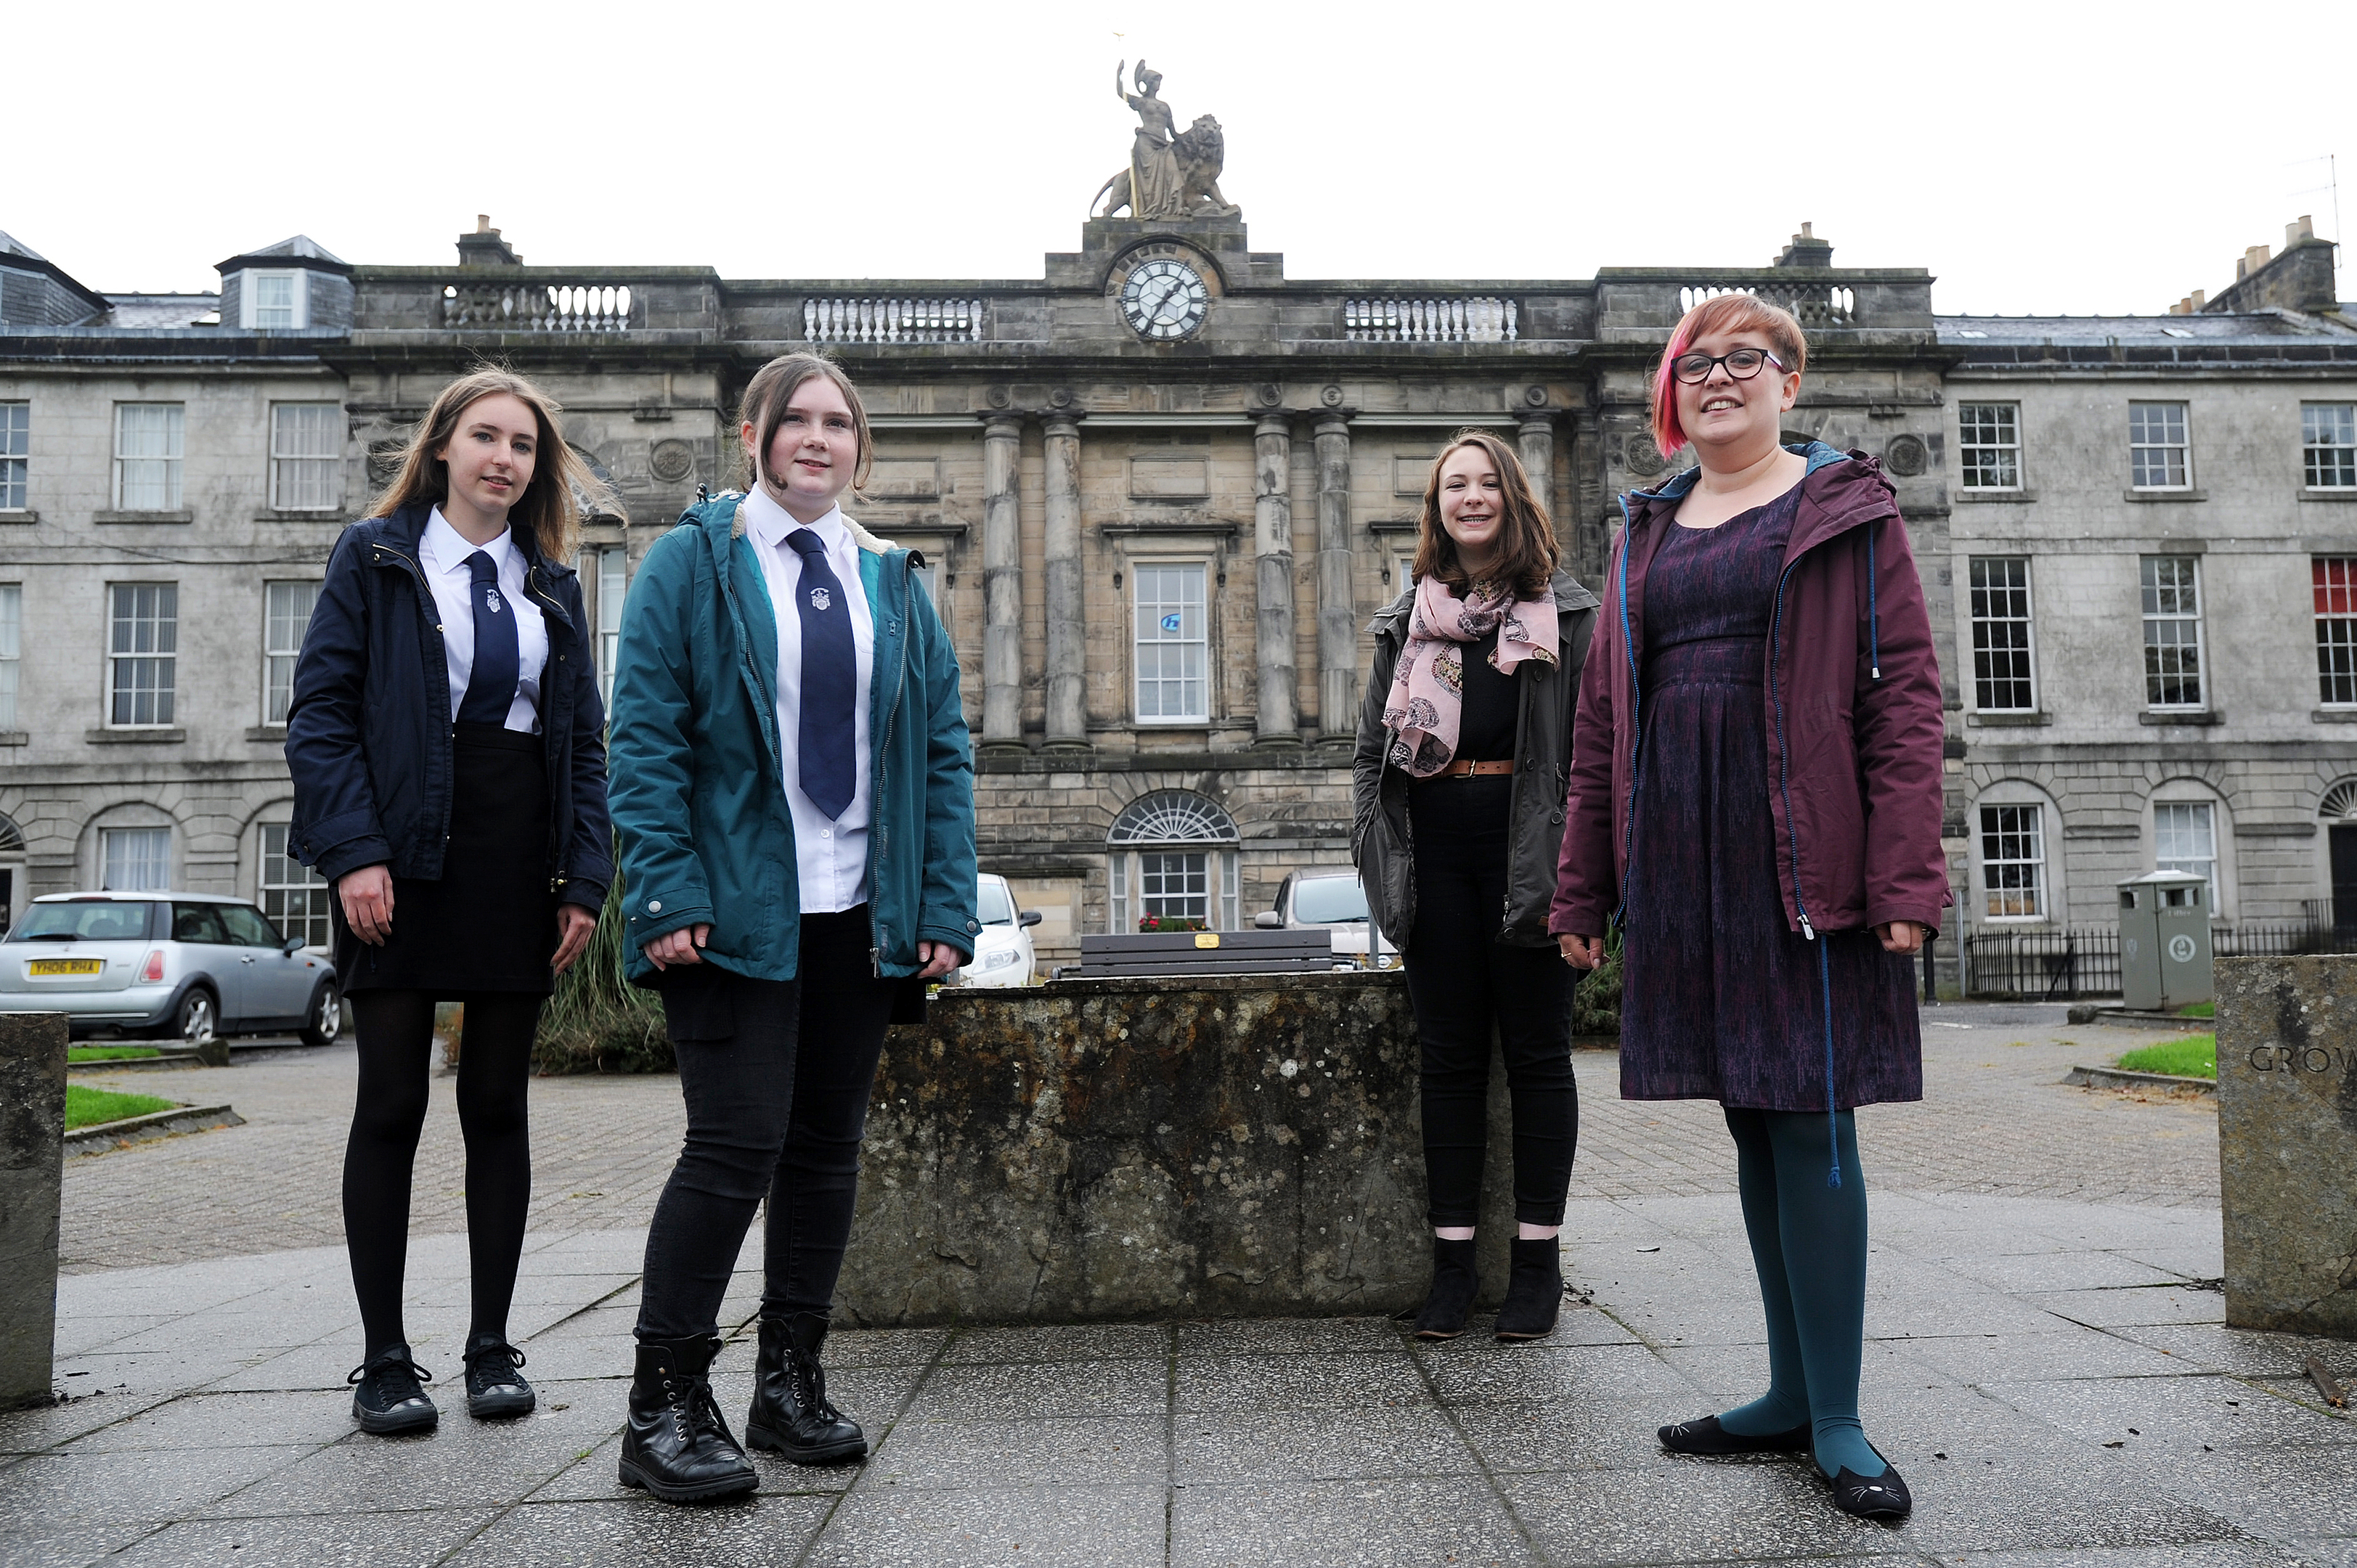 S5 History Students (l-r) Heather Beer, Rachel Fallon, Corey Coutts and teacher of history Laura Hobson at, Rose Terrace